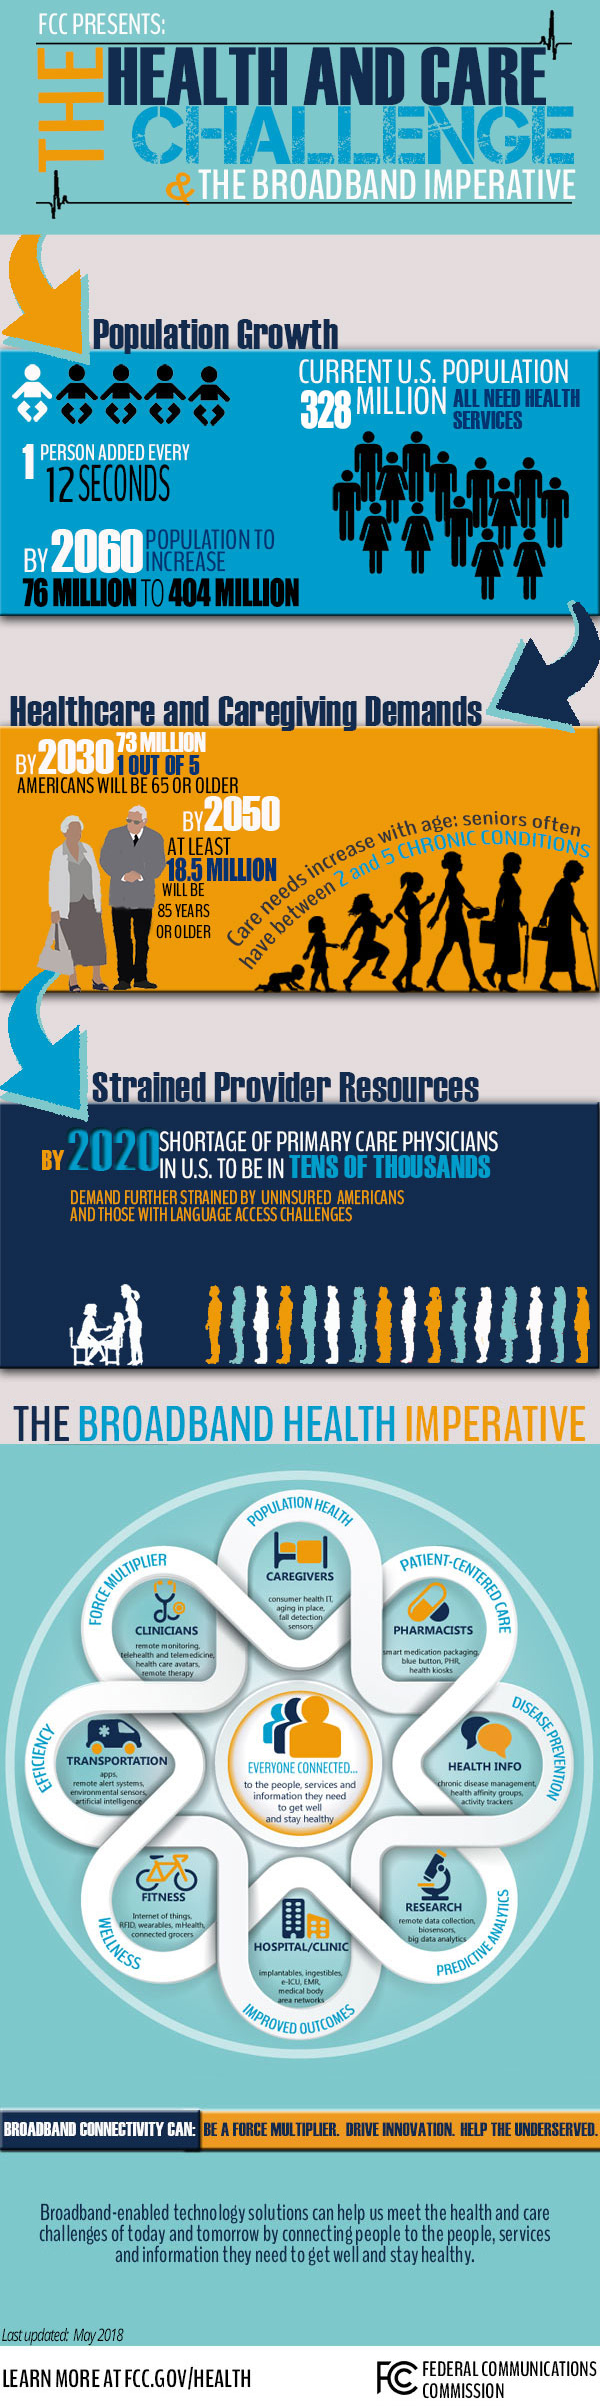 Infographic: The Health and Care Challenge and the Broadband Imperative